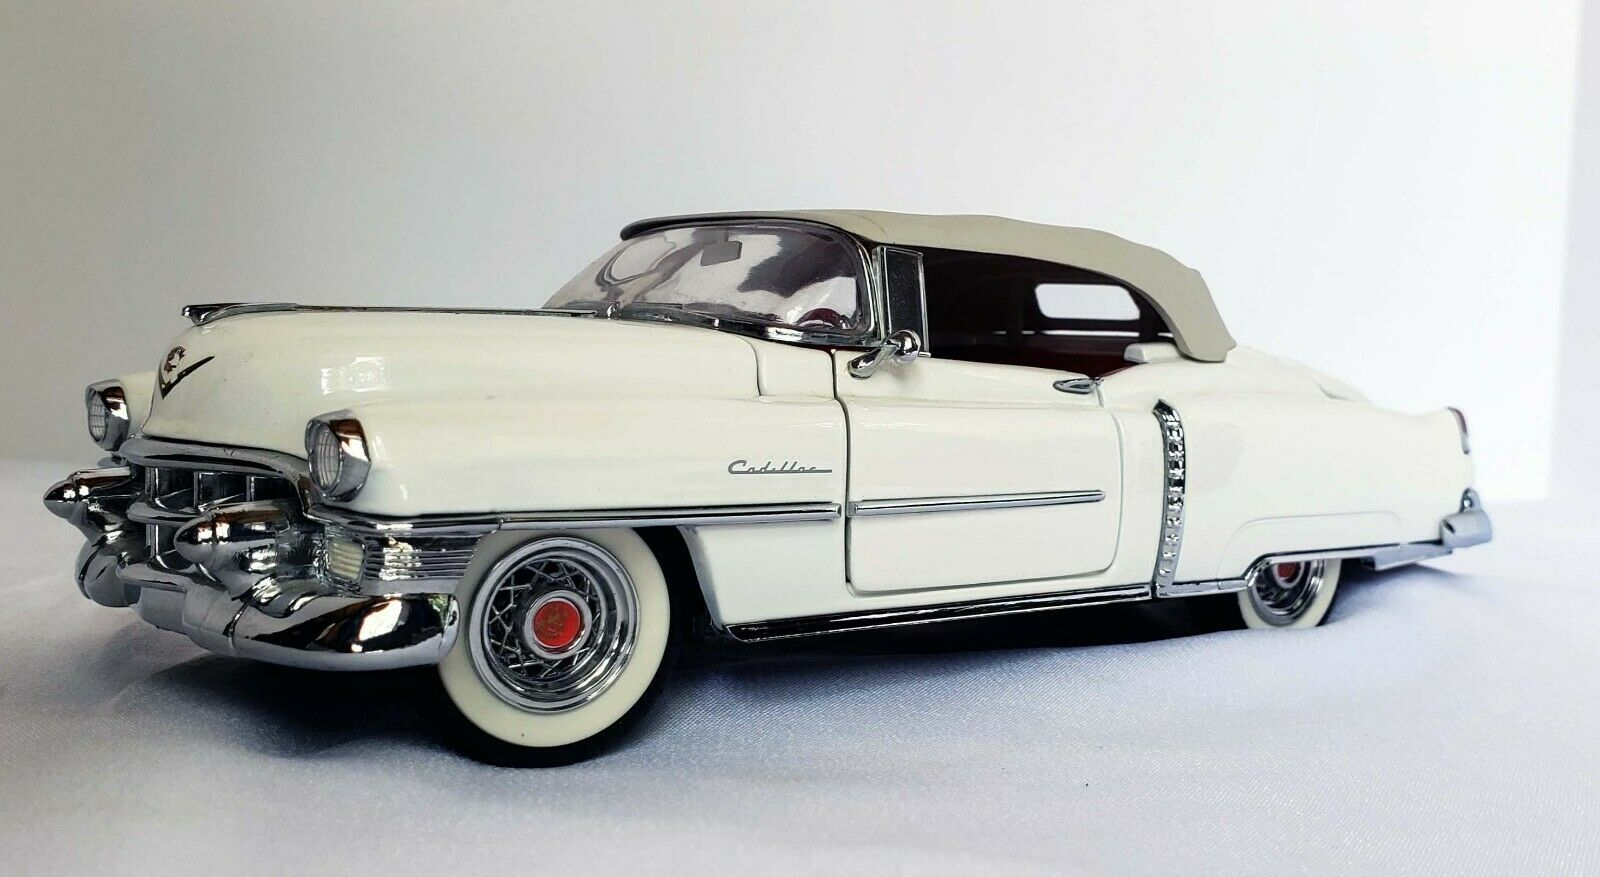 1953 Cadillac Eldorado ConGrünible Franklin Mint 1 24 Scale Die-Cast Model